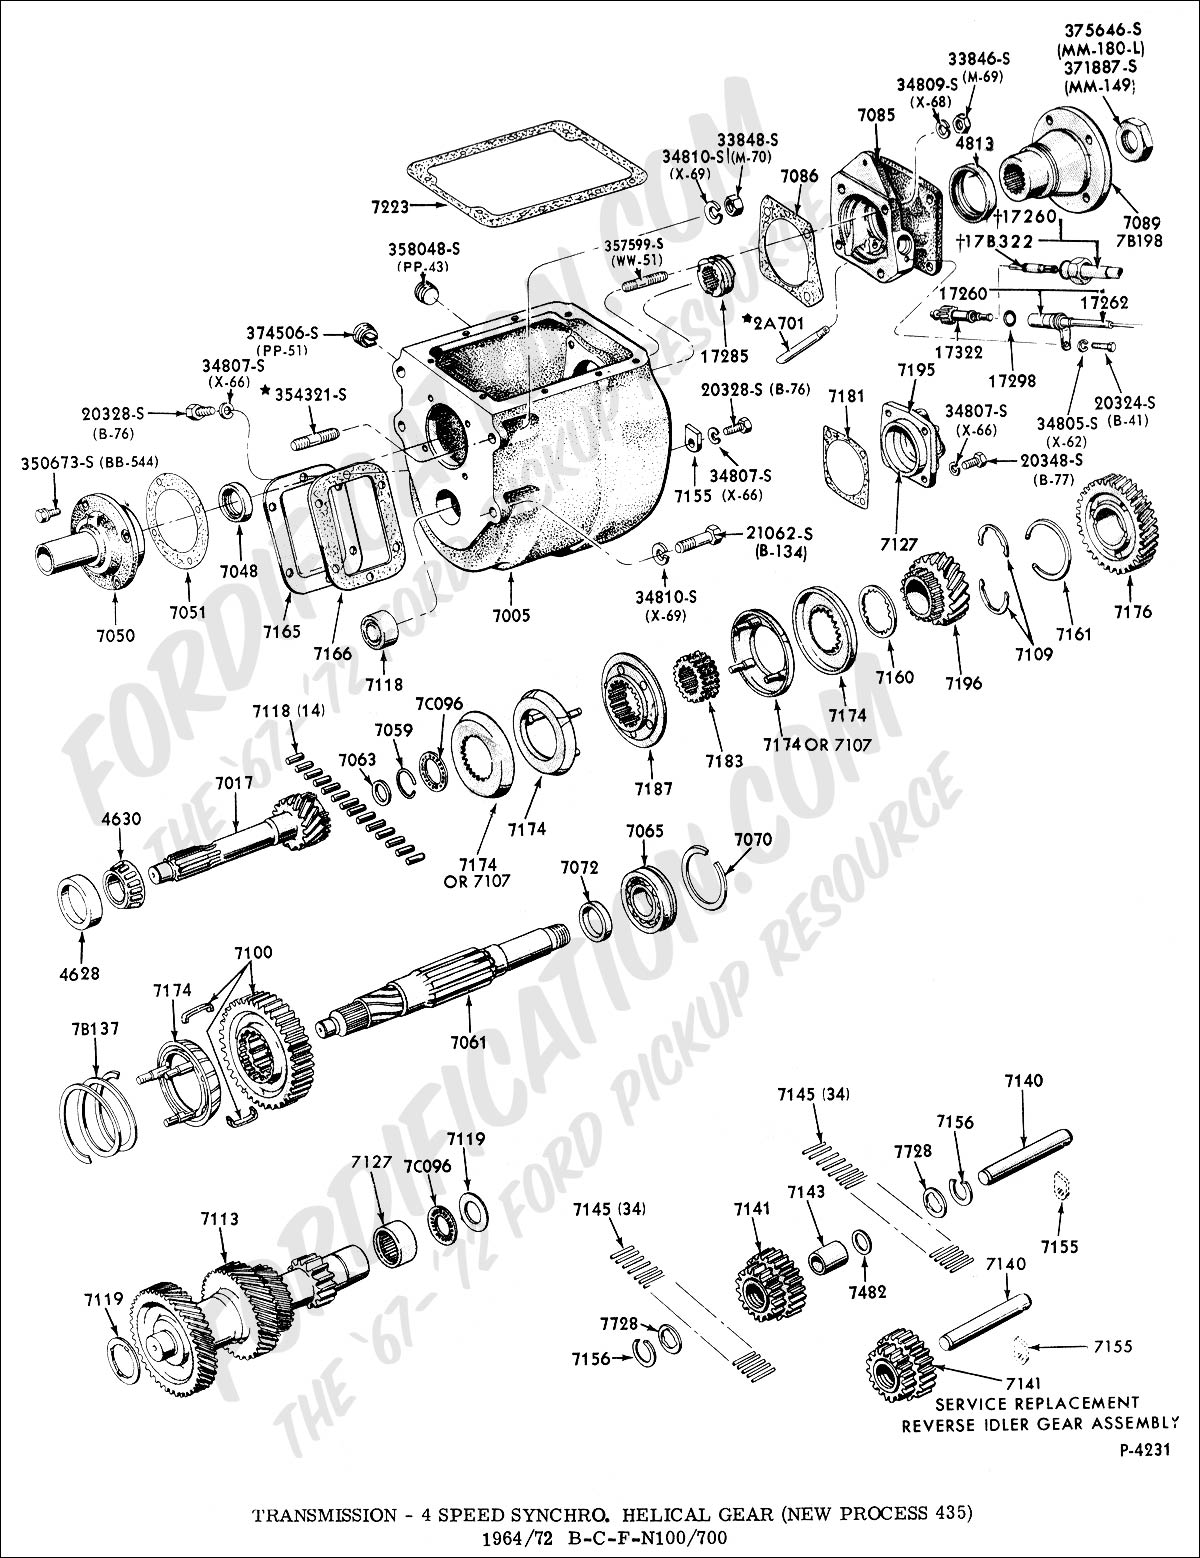 harley 6 sd transmission parts diagram  harley  free